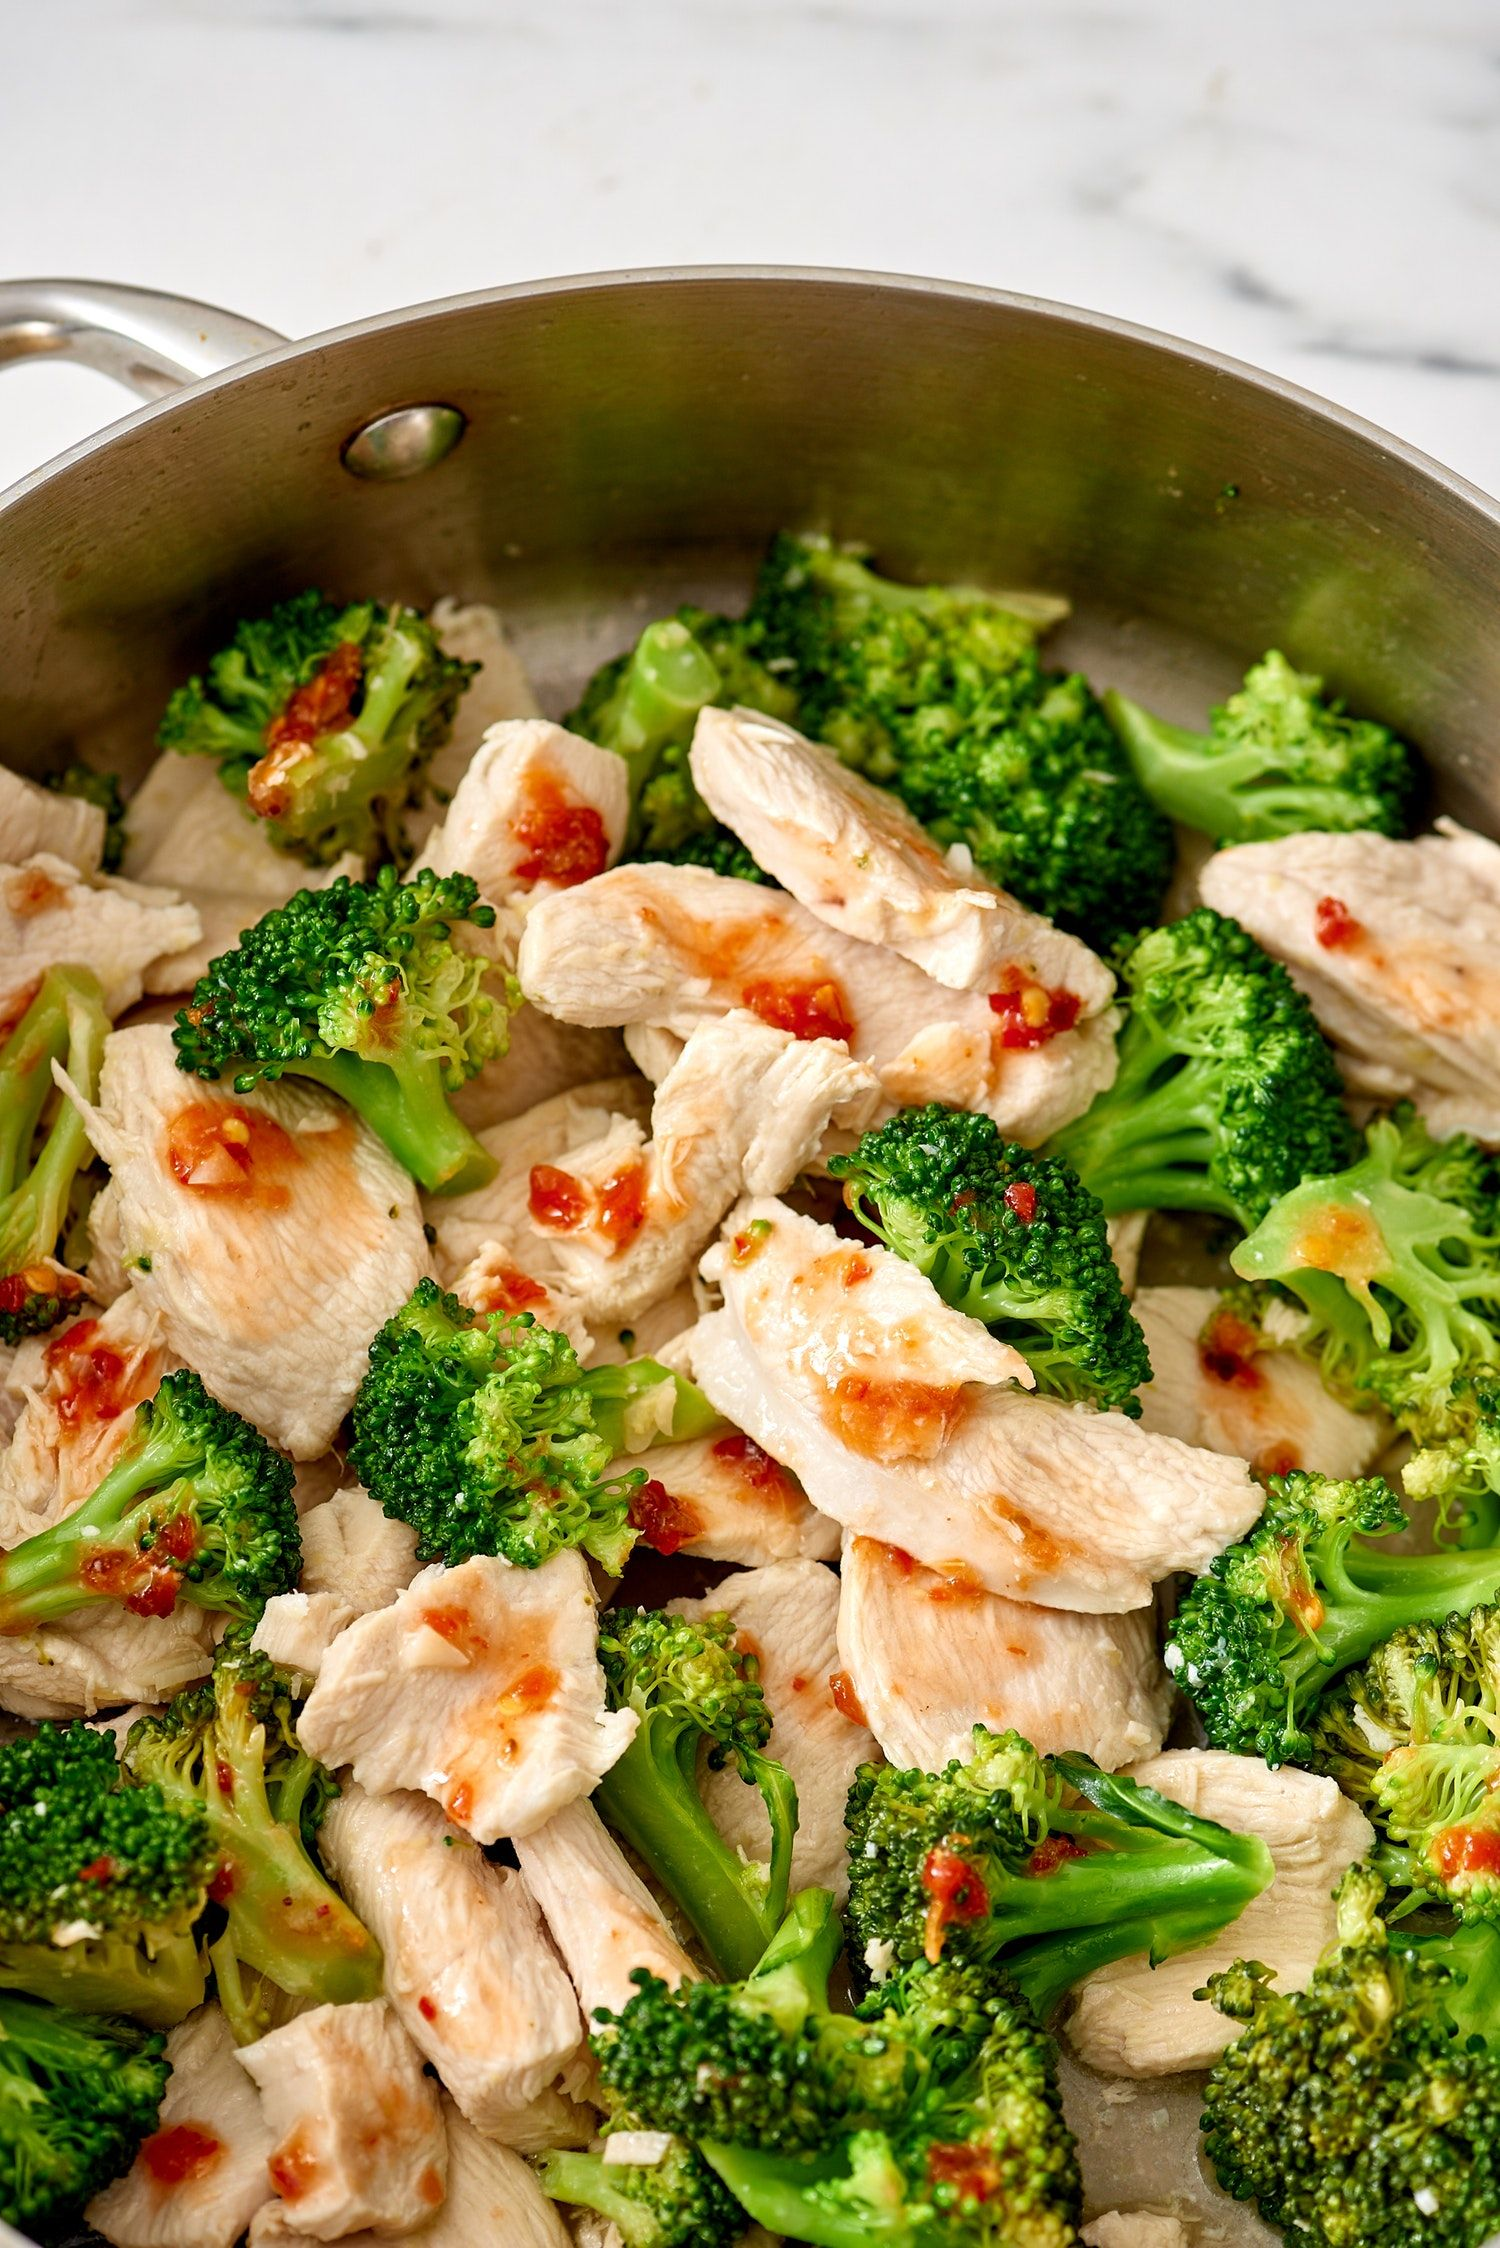 How to make chicken and broccoli stirfry in any pan